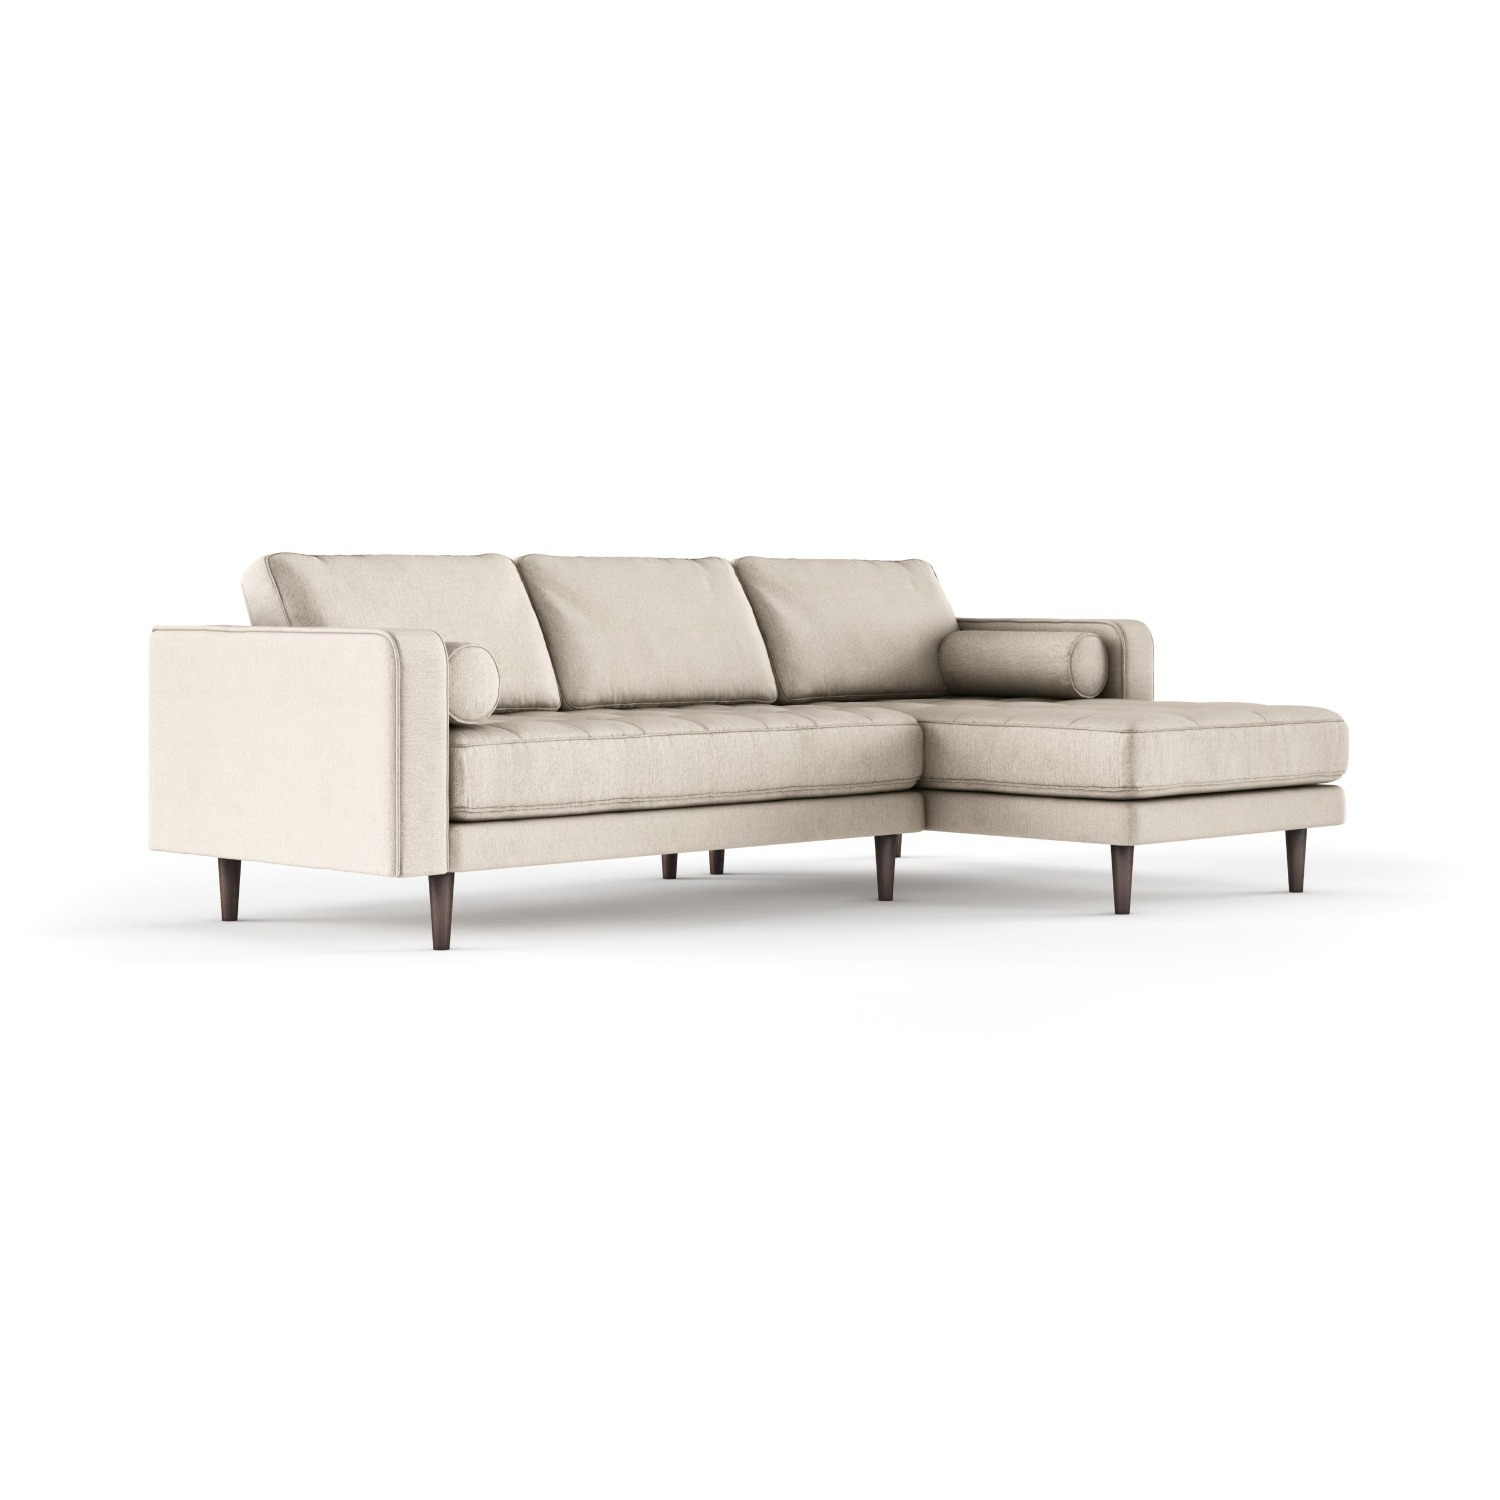 Oliver Space Breuer - Right Chaise - image-1